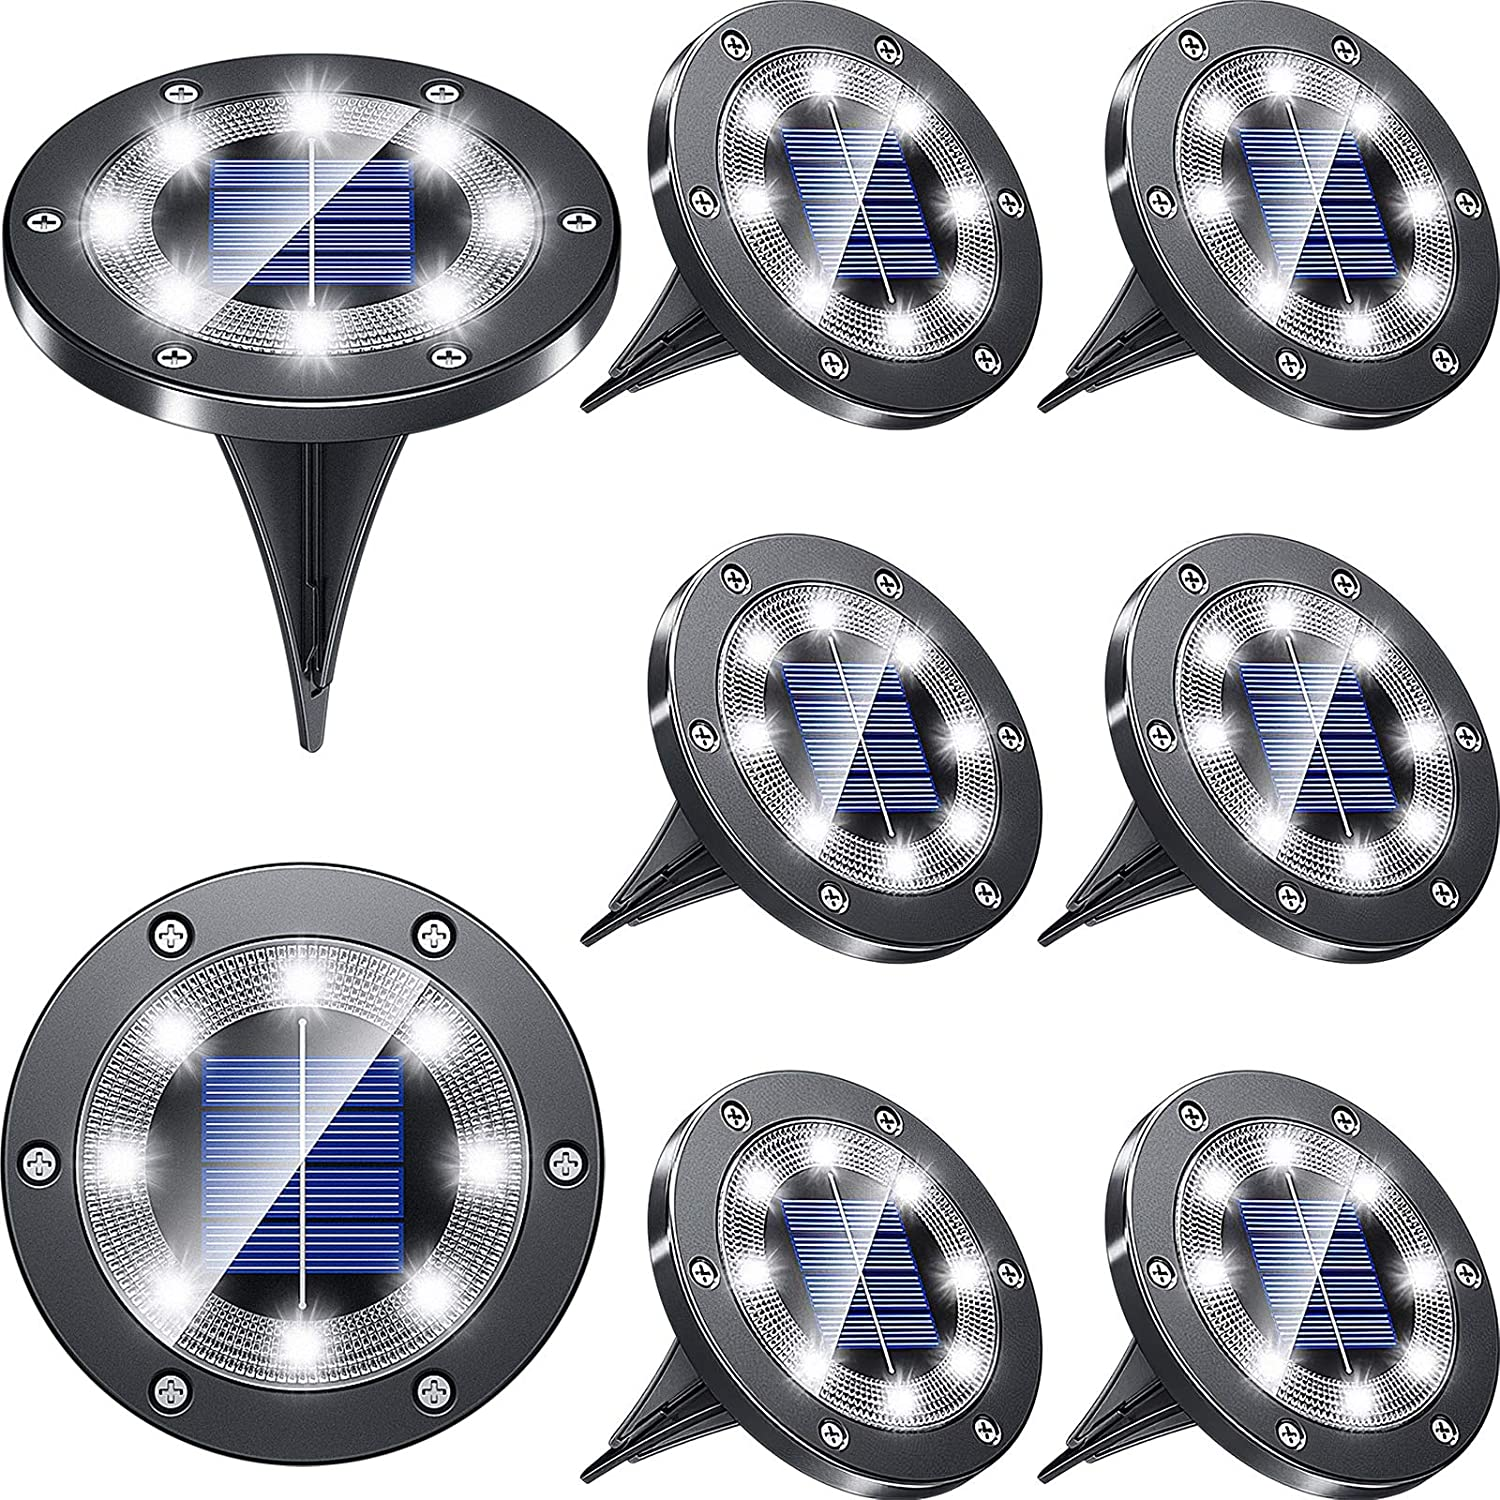 Biling Solar Lights Outdoor Grid Design Shell, Solar Powered Frosted Black Ground Lights Outdoor Waterproof, 8 LED Solar Disk Lights for Pathway Garden Yard Landscape Patio Lawn - White (8 Pack)